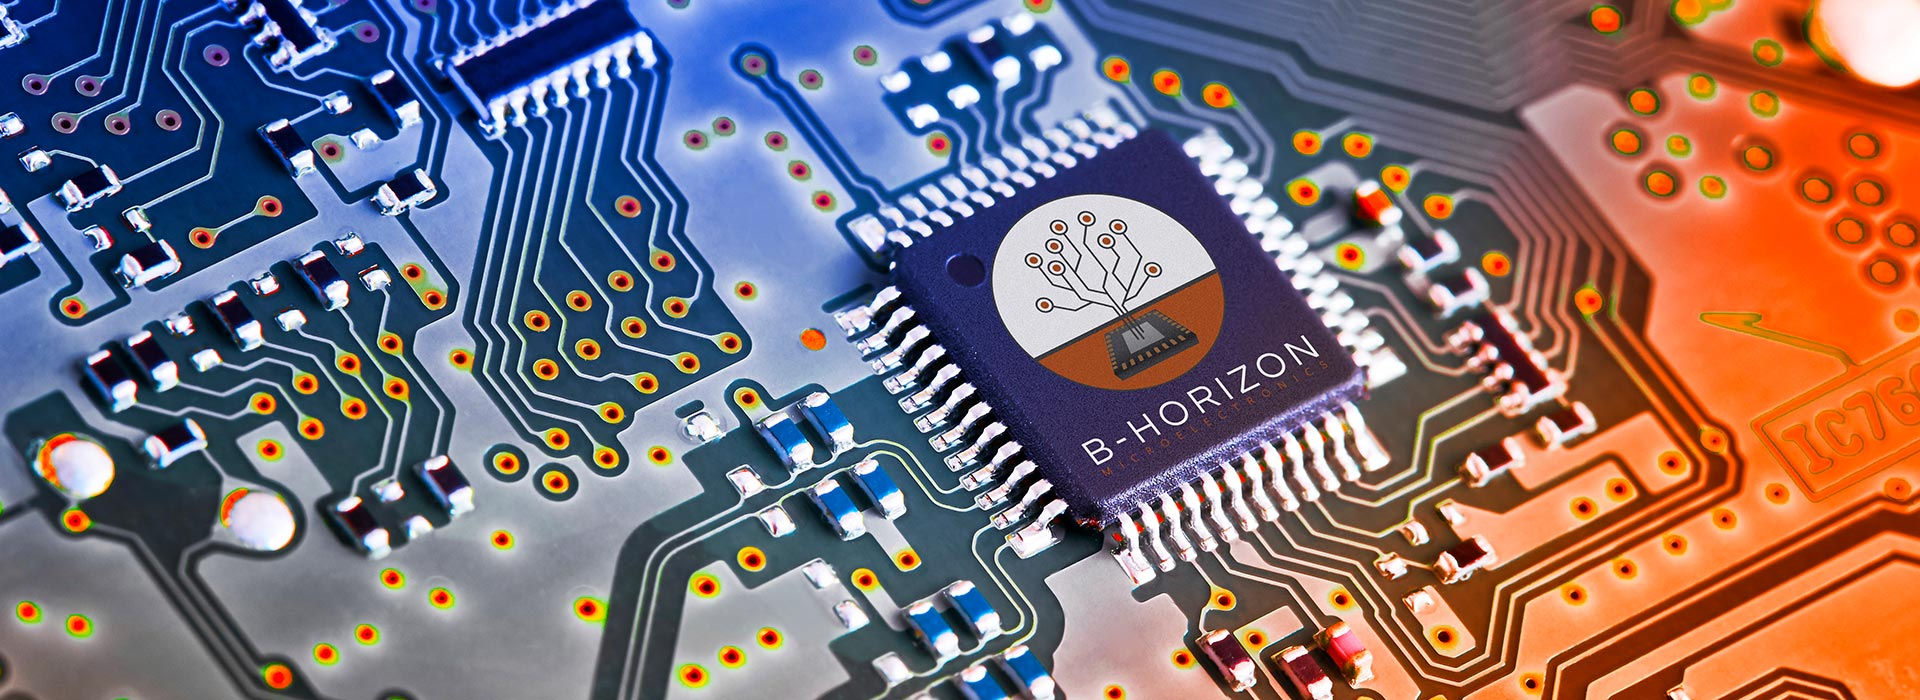 Microchip on a circuit board (also known as PCB: printed circuit board) from microelectronic development. B-Horizon Microelectronics supports its customers with the development of innovative products and successfully realizes projects with high quality standards.